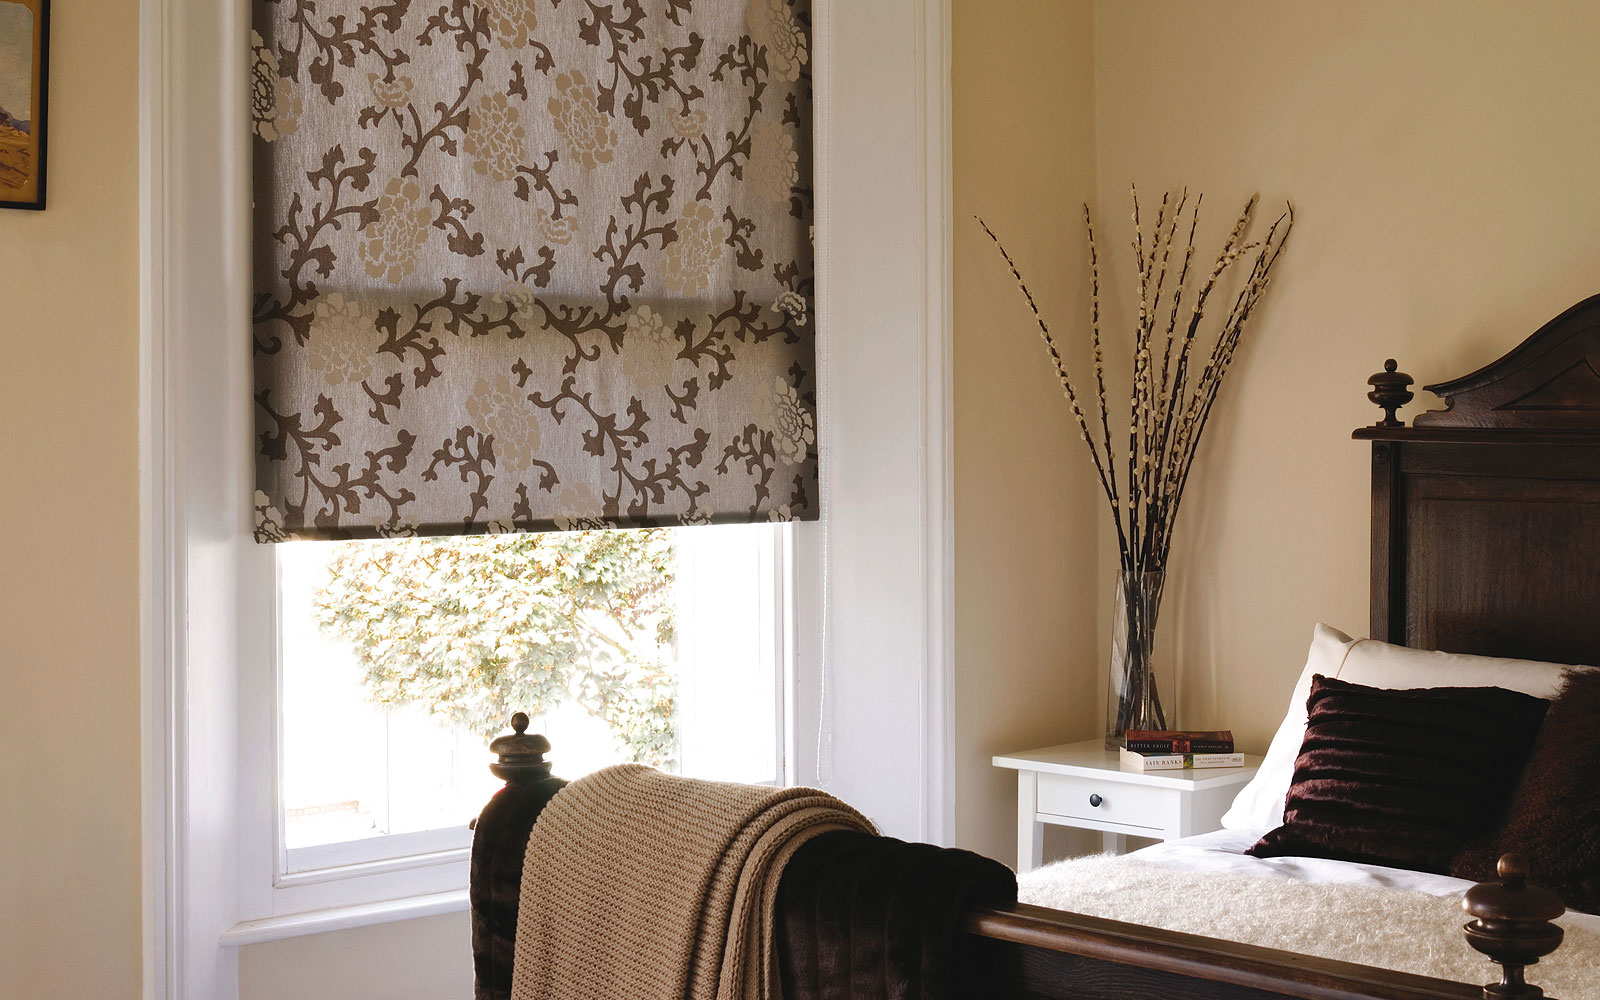 Bedroom blinds expression blinds for Shades for bedroom windows